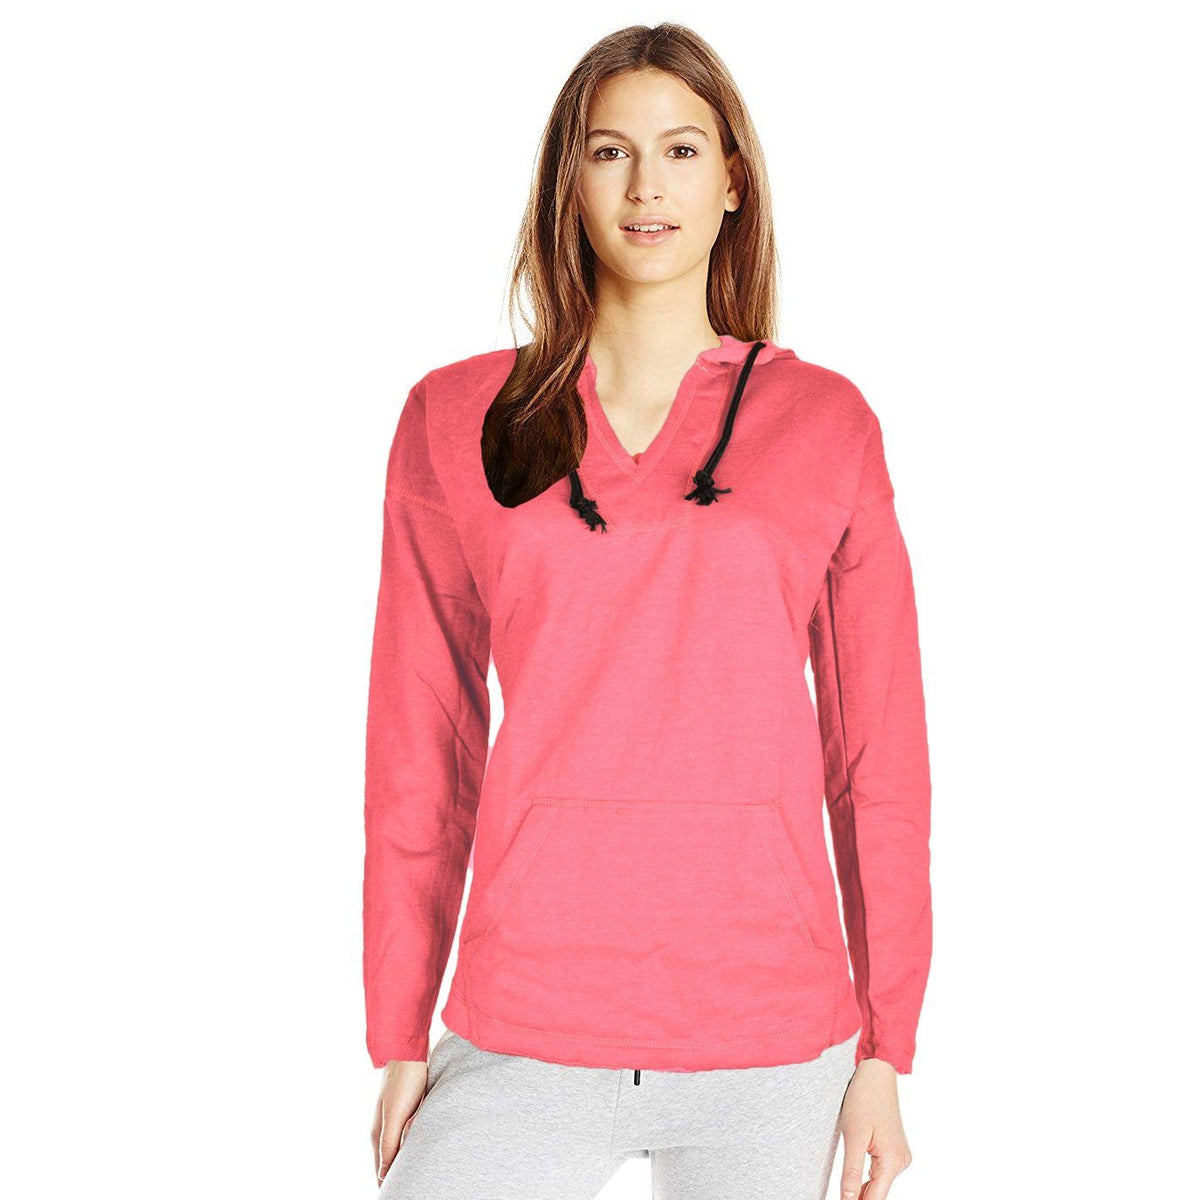 J4W Women's Classic V-Neck Cropped Hoodie Women's Pullover Hoodie SRK Pink S